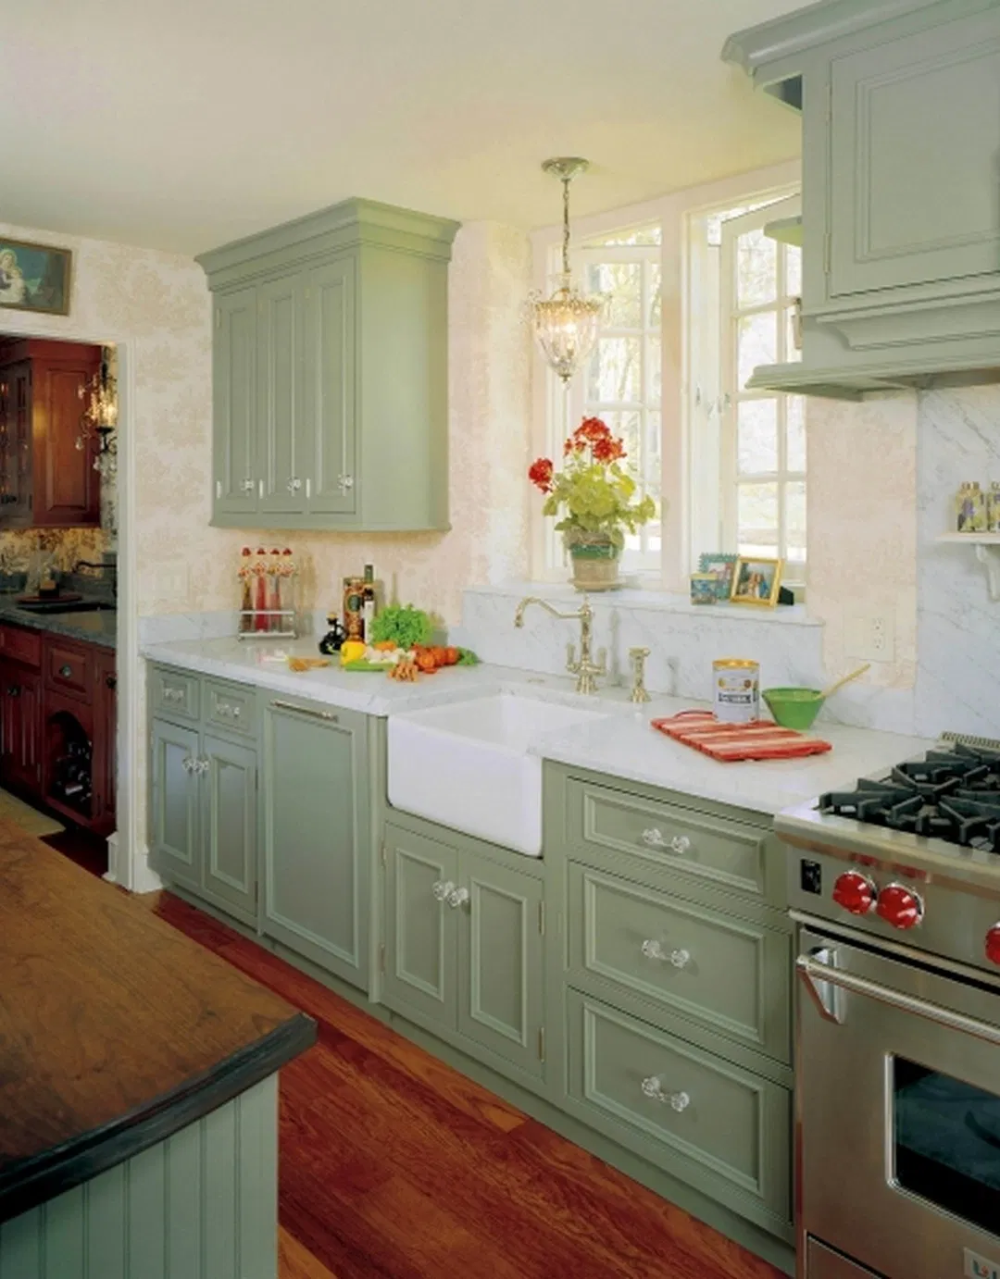 31 popular green kitchen cabinet colors ideas 22 with images cottage kitchen cabinets on kitchen cabinet color ideas id=12247